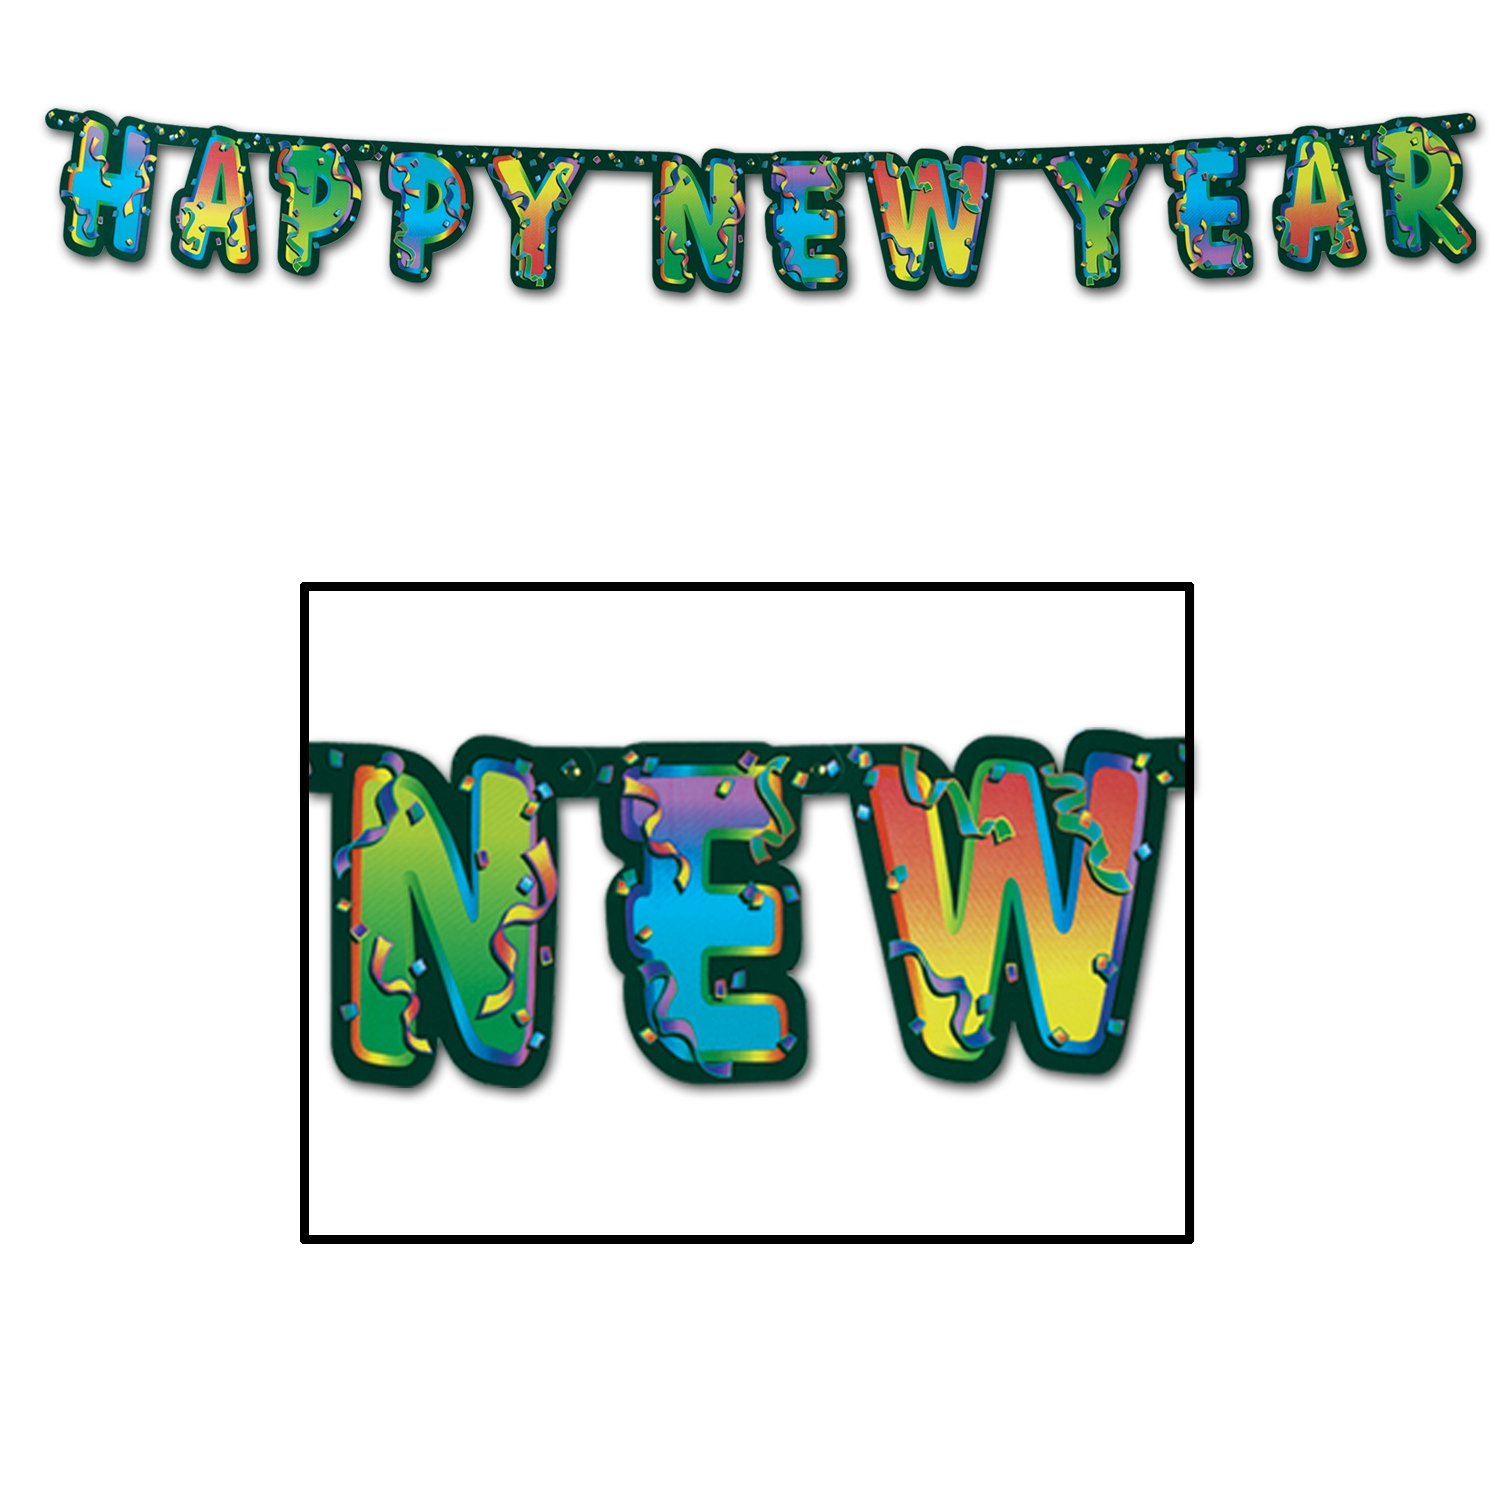 Happy New Year Streamer (Pack of 12) Streamers, Banners, NYE, Colorful decorations, decor, Venue decorations, Hanging Decor